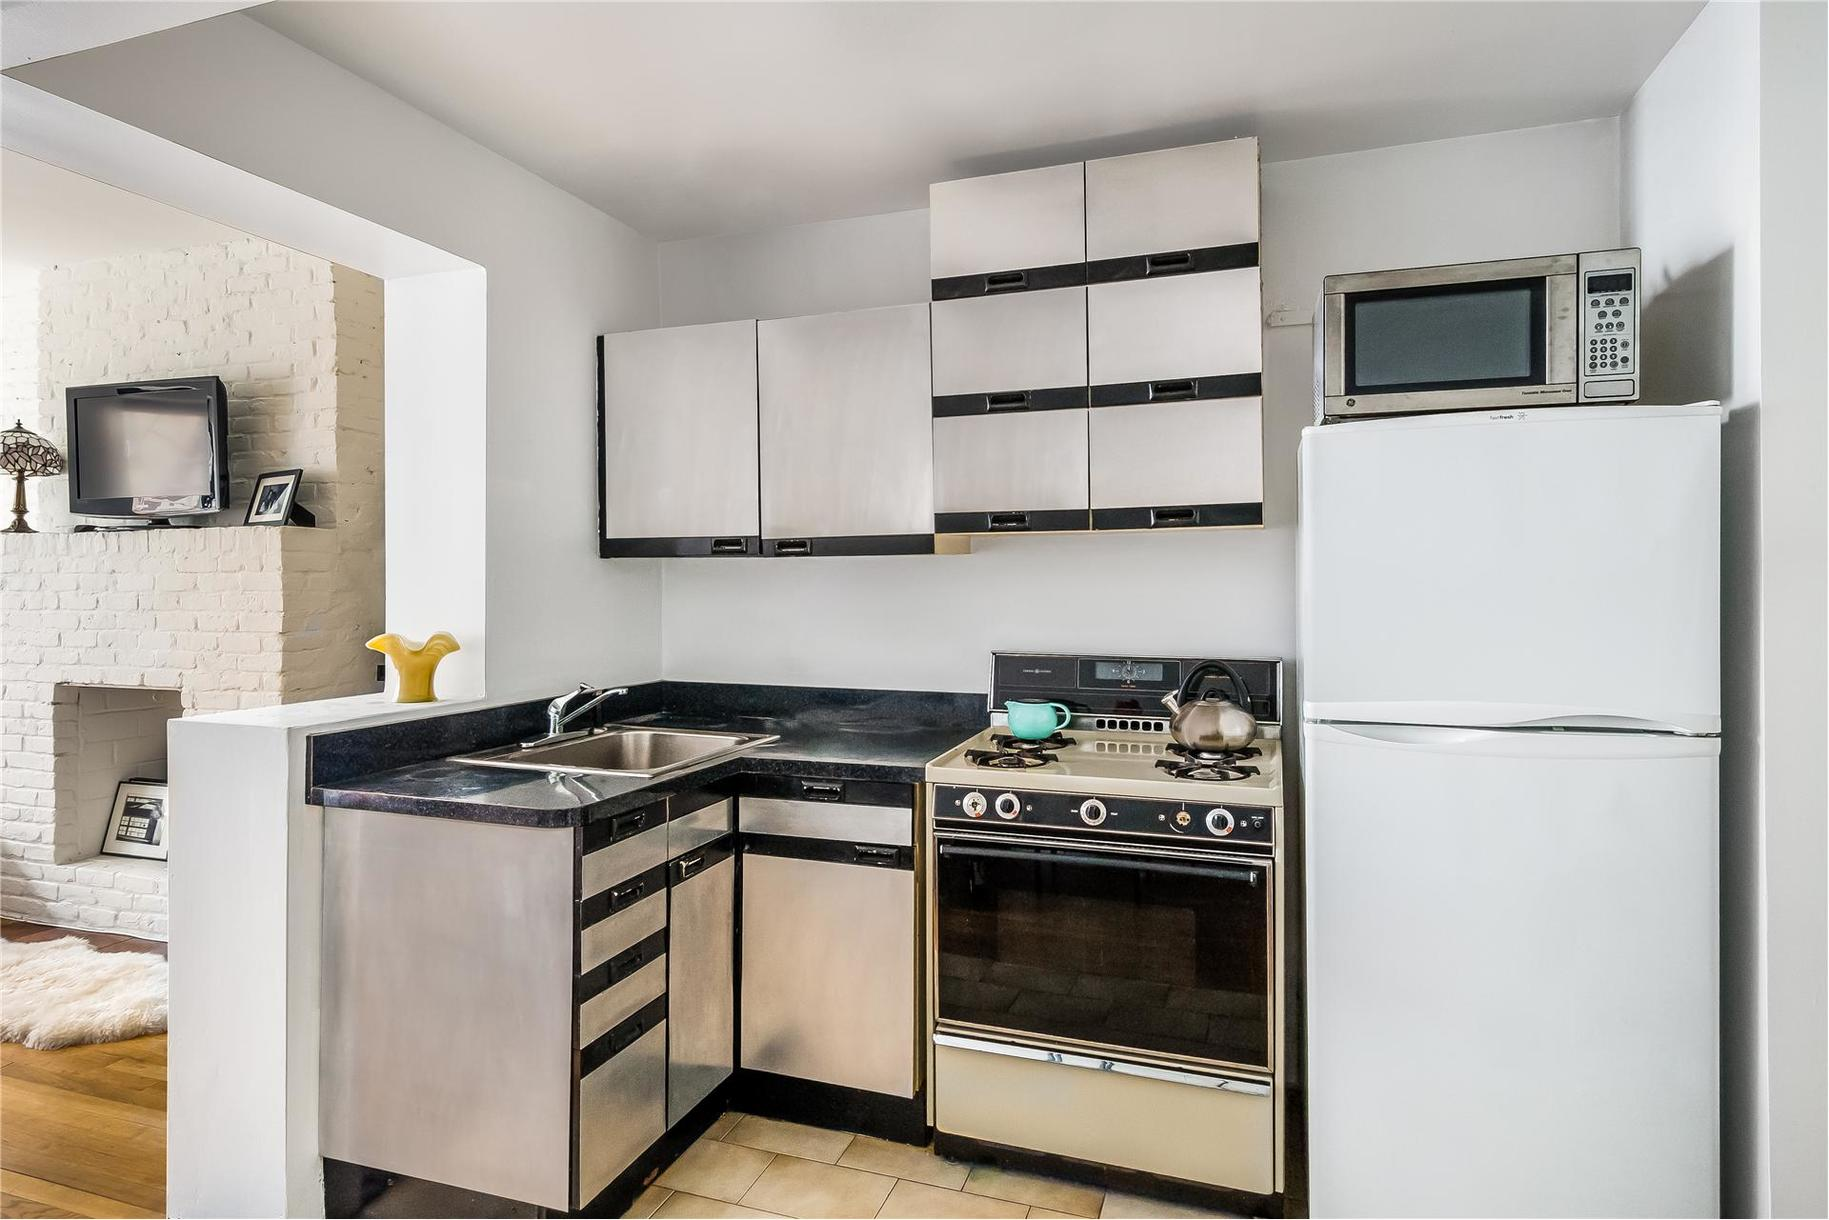 24 Cornelia Street, West Village, Cool Listing, Studio, West Village Studio for Sale, Co-op